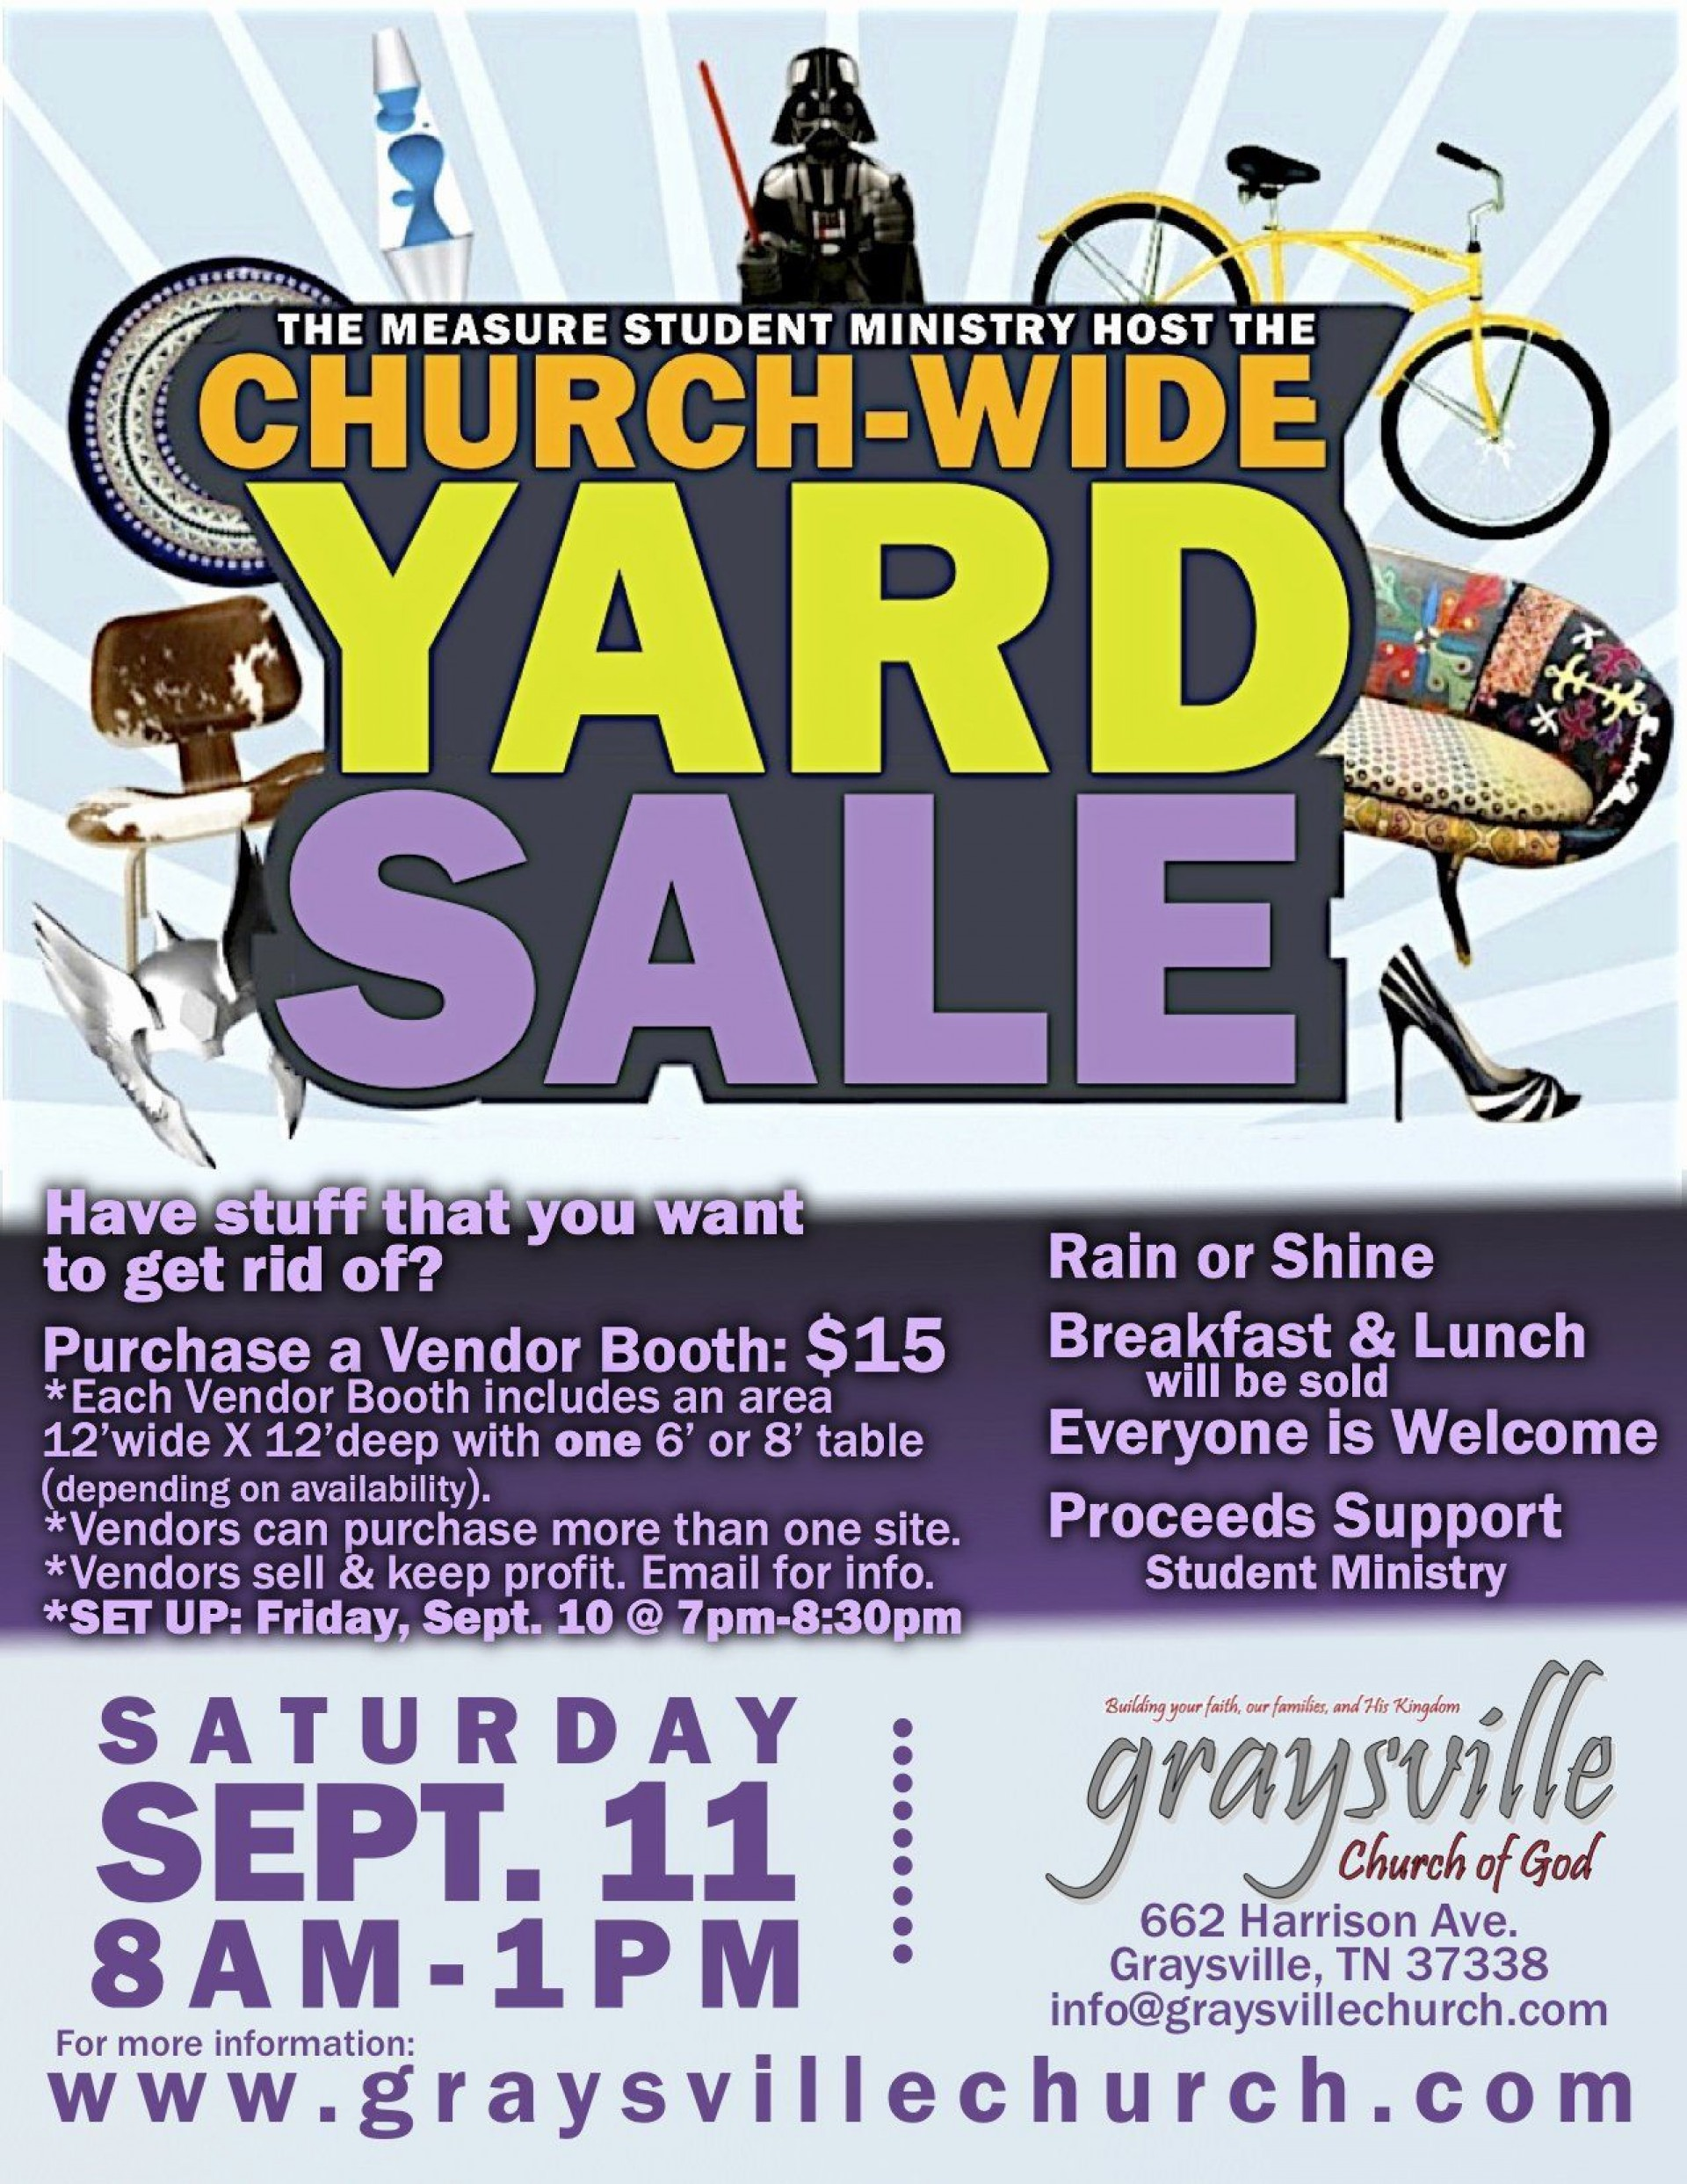 001 Fascinating Yard Sale Flyer Template Design  Ad Sample Microsoft Word Garage Free1920